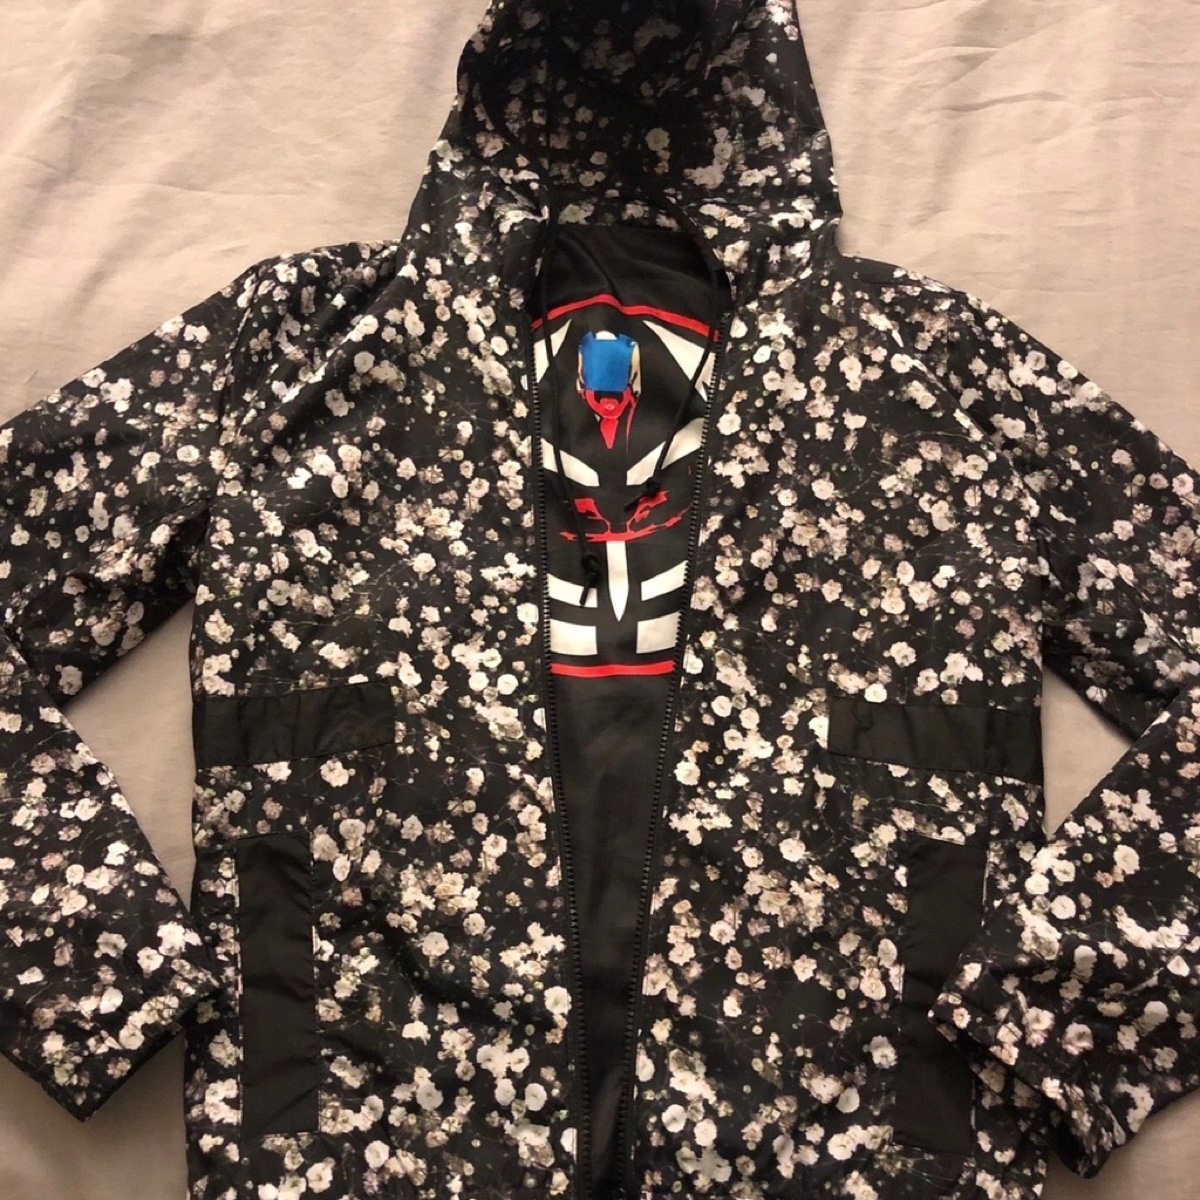 Givenchy baby's breath banded straps jacket